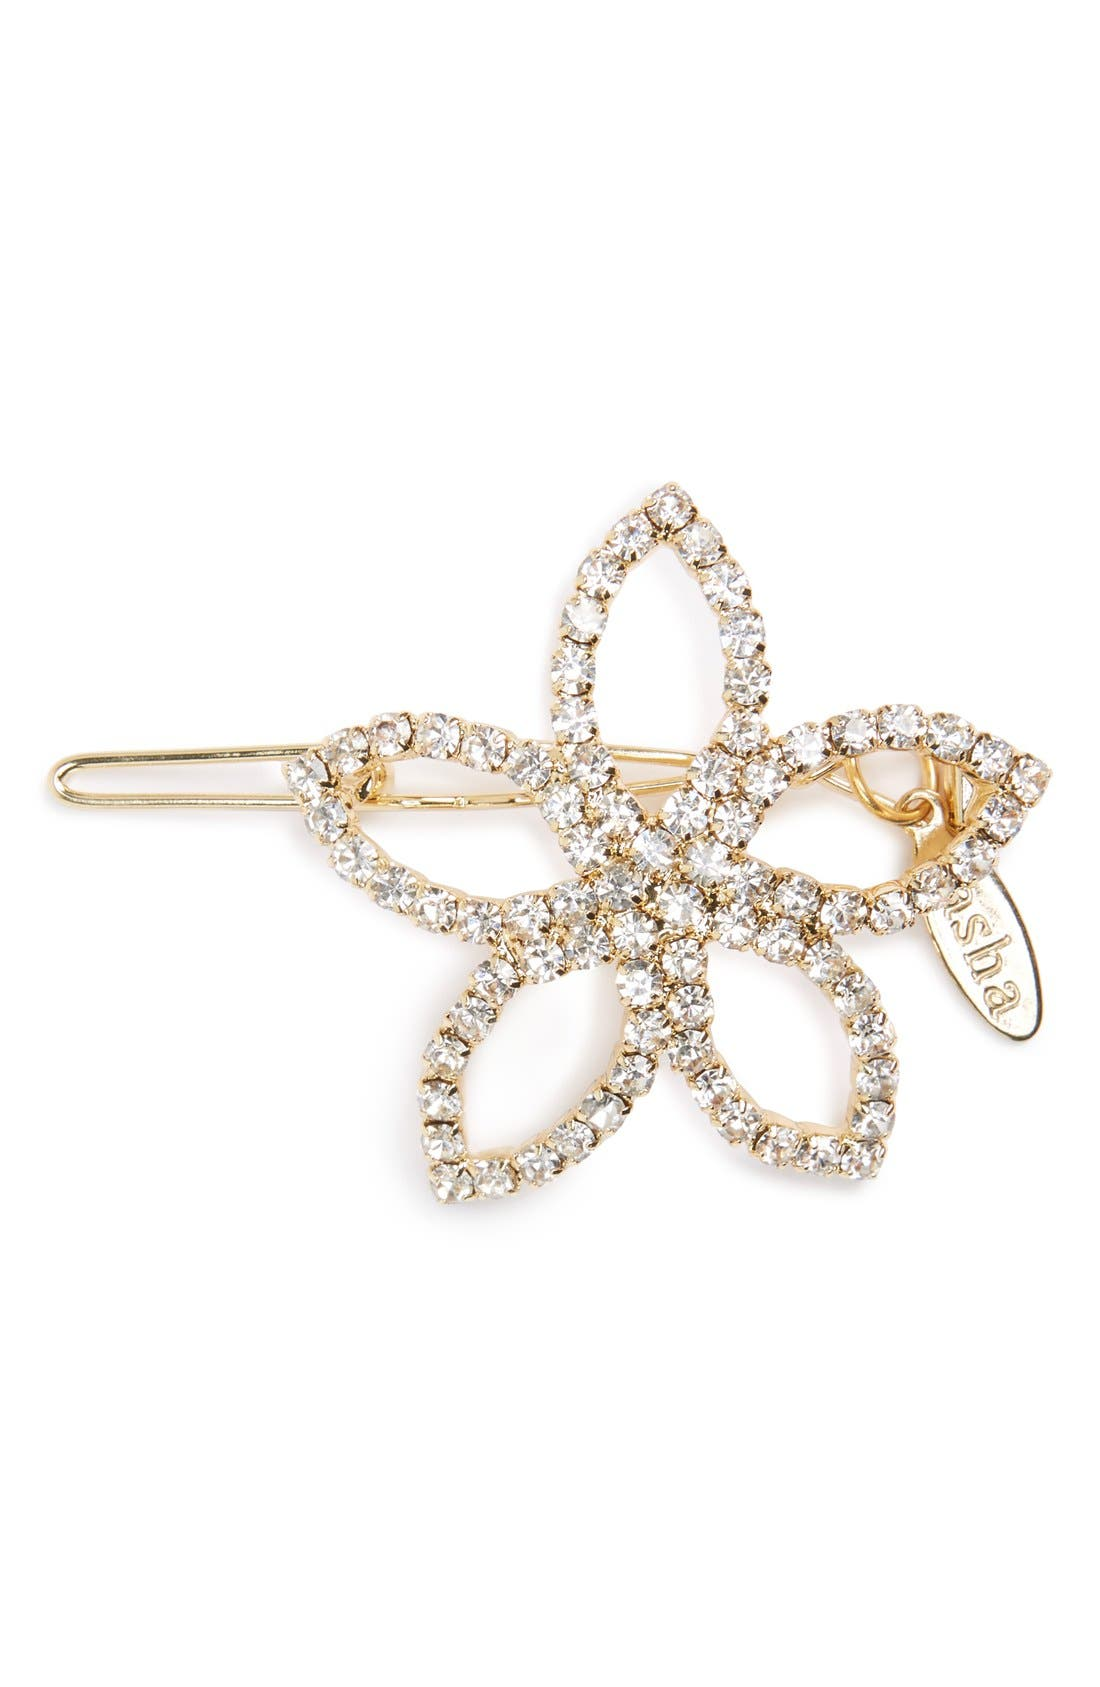 TASHA Crystal Flower Barrette, Main, color, 710